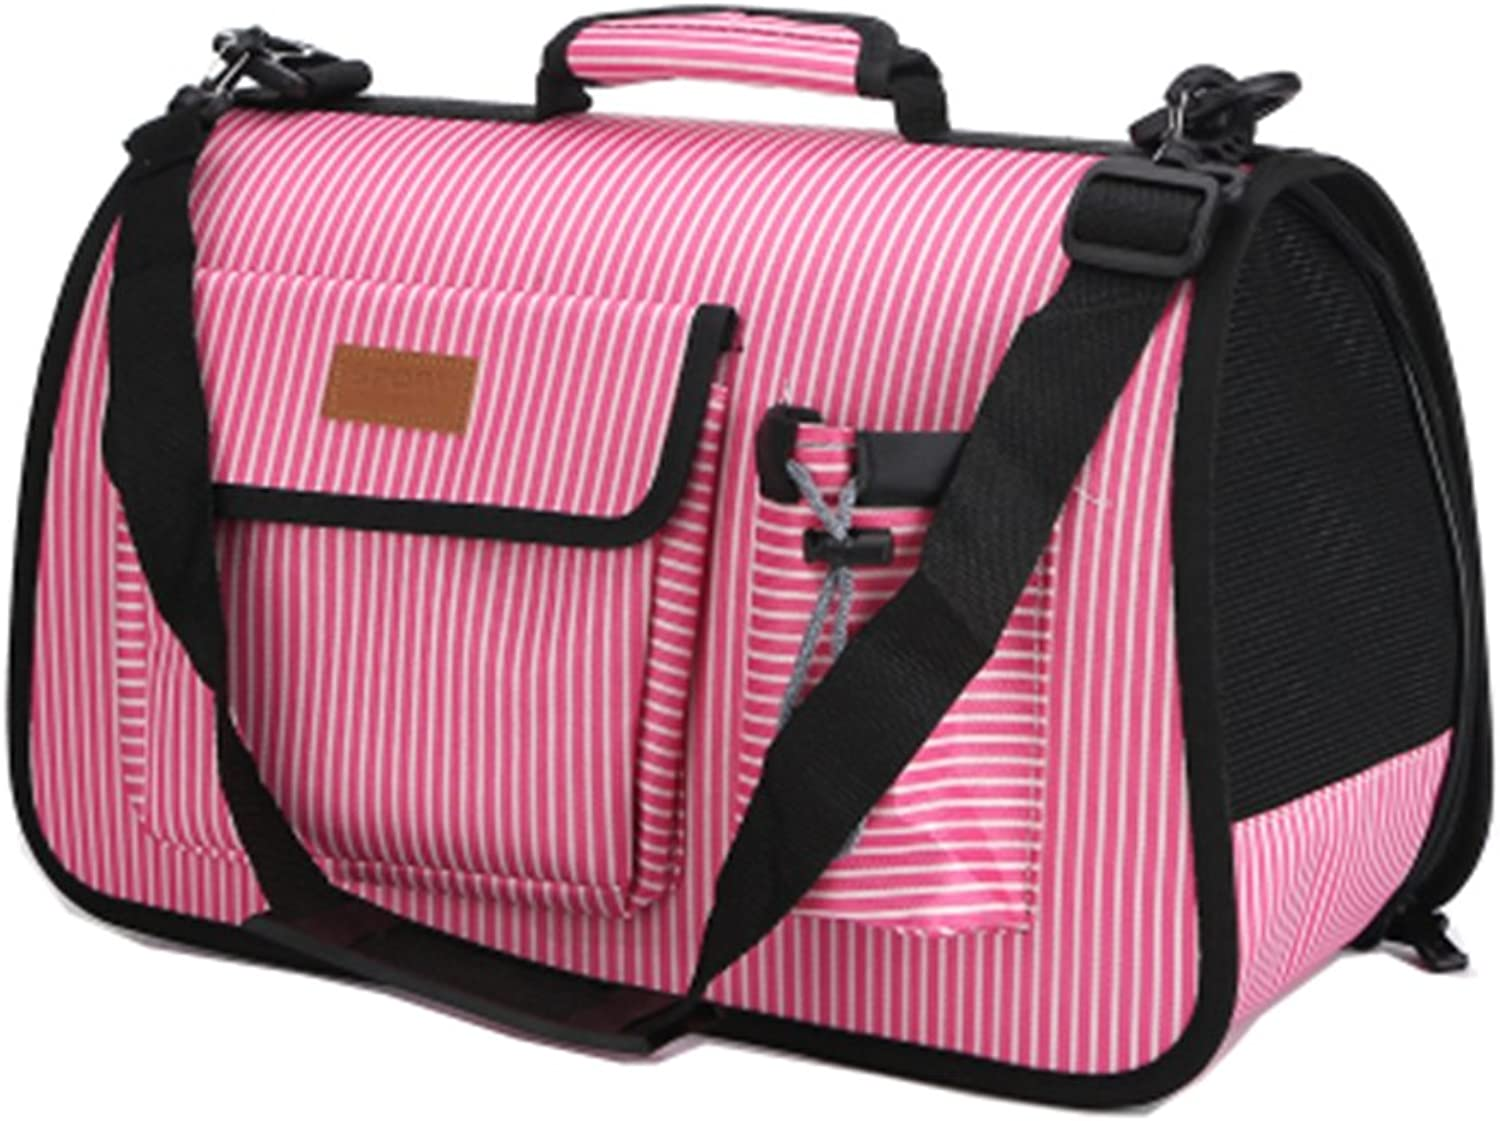 Pet Carrier Soft Sided Travel Bag for Small Dogs & Cats Airline Approved  52